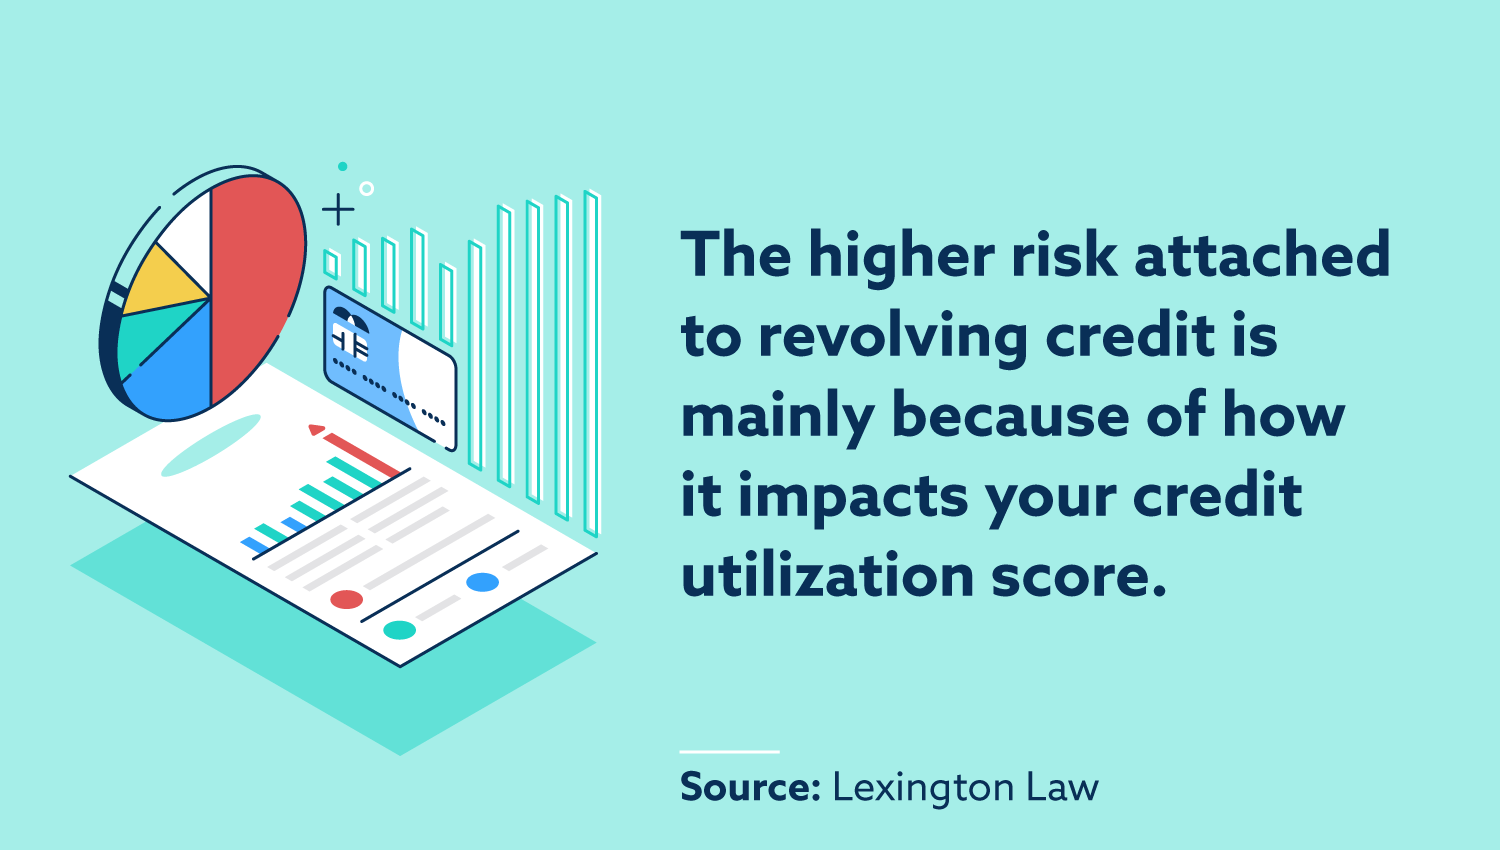 The higher risk attached to revolving credit is mainly because of how it impacts your credit utilization score